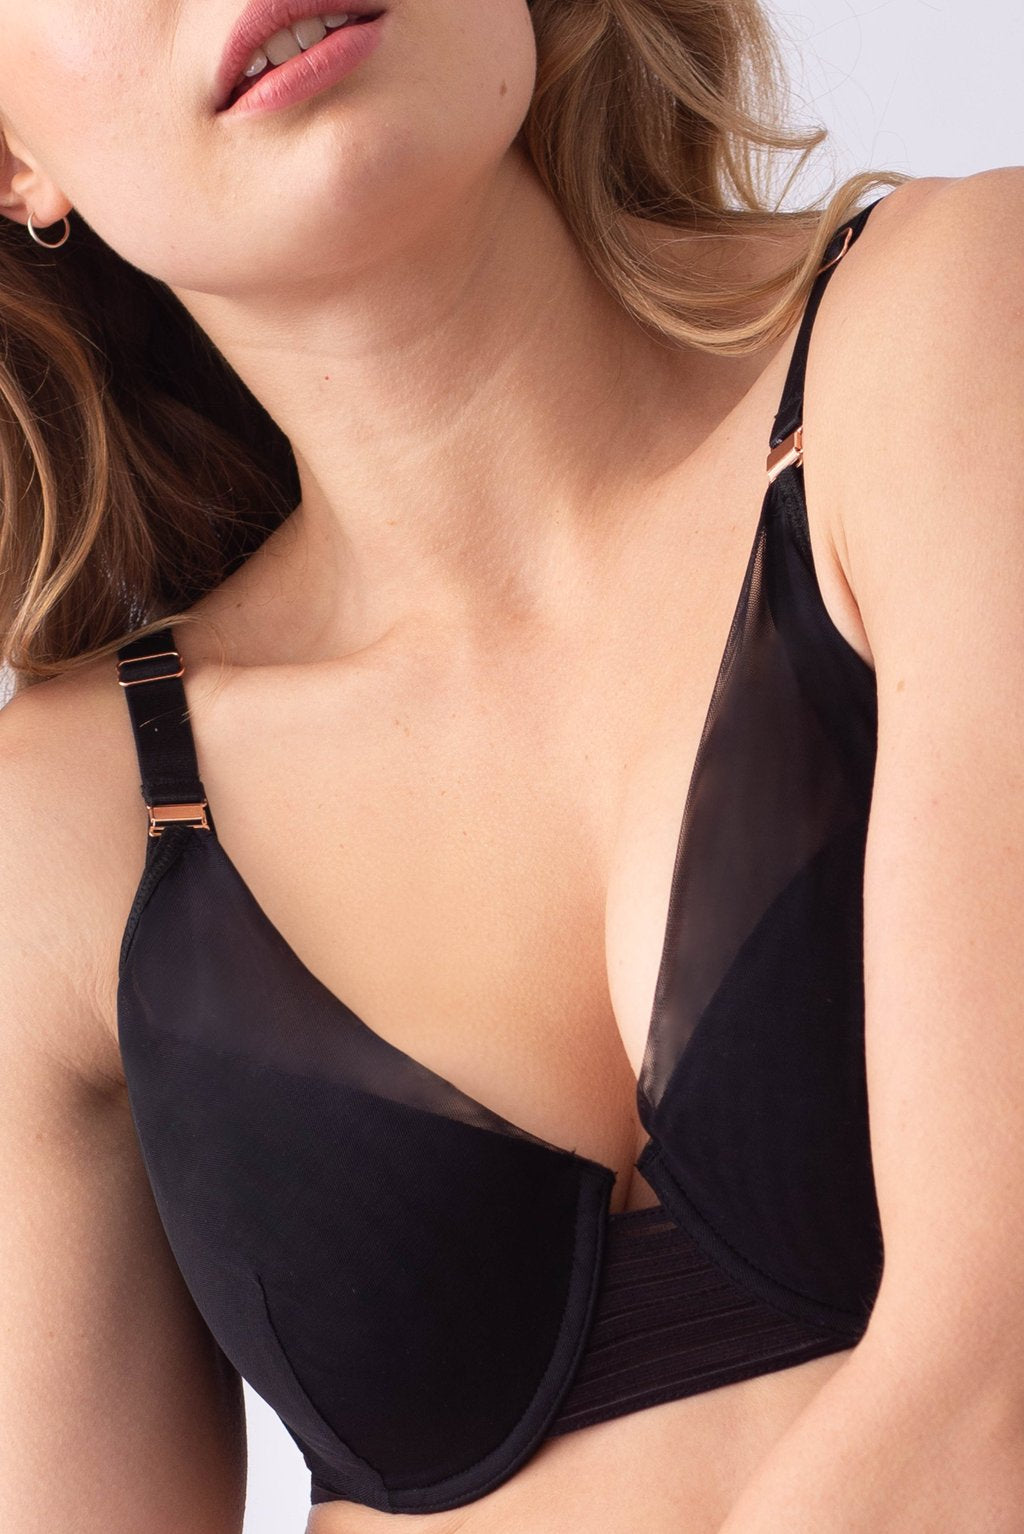 Ambition Plunge Contour Nursing Bra by Hotmilk